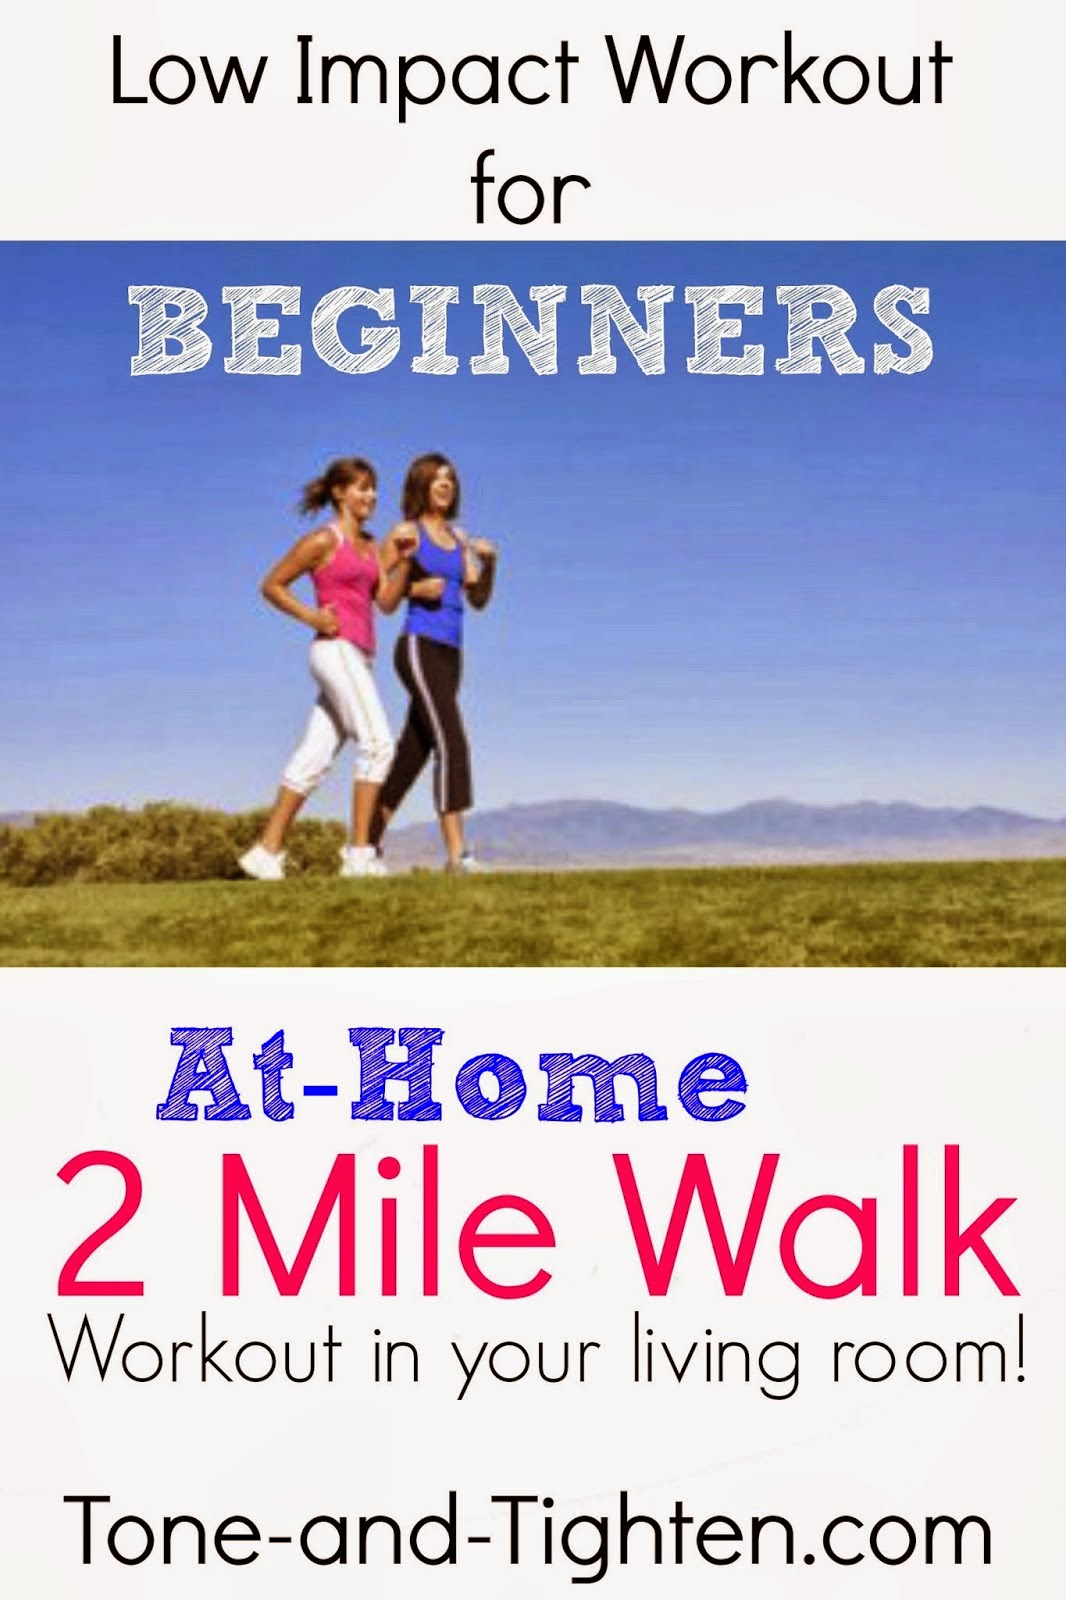 https://tone-and-tighten.com/2014/01/low-impact-workout-for-beginners-at-home-2-mile-walk.html